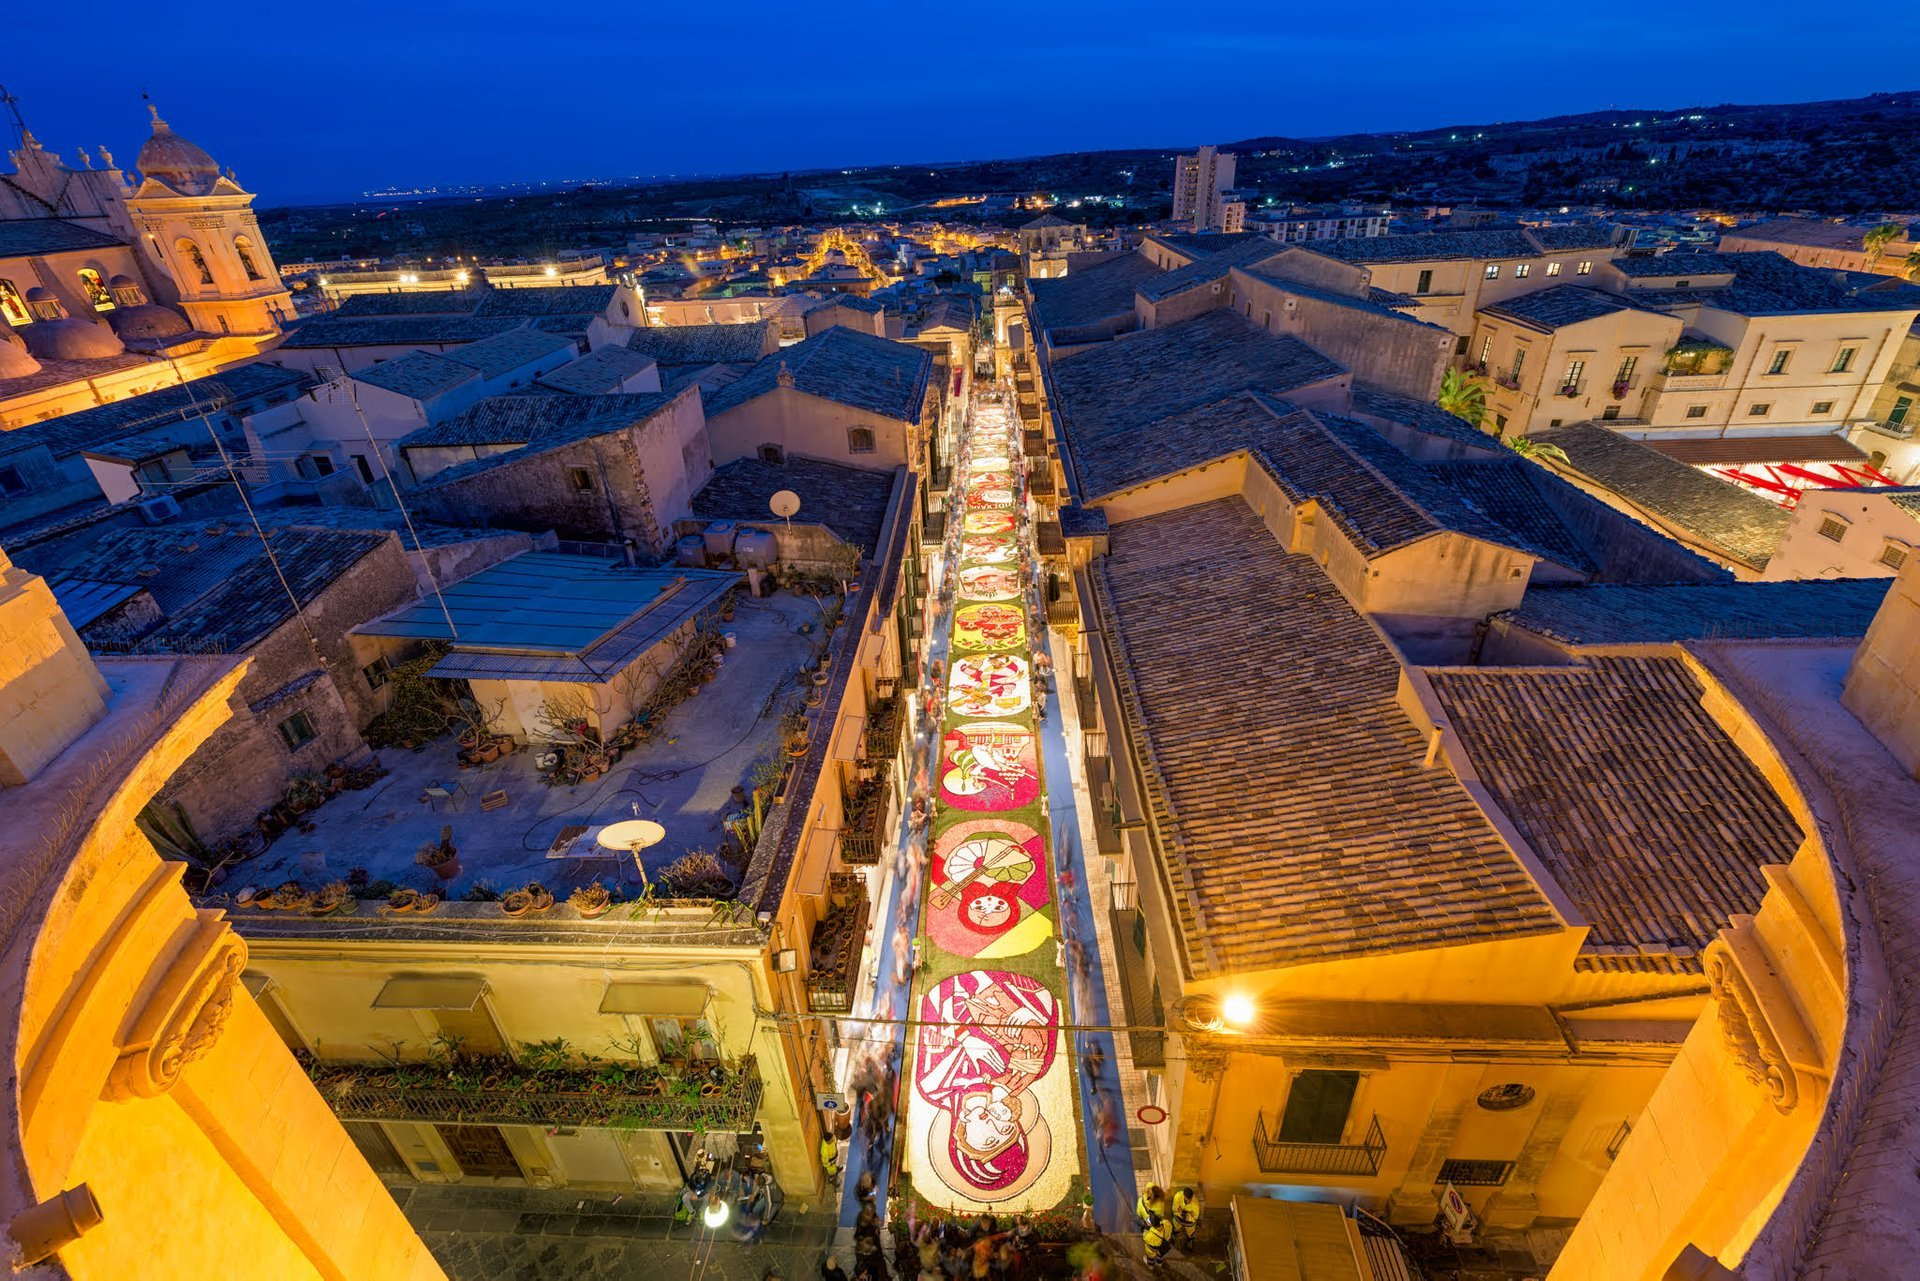 A view from above of Via Nicolaci, Noto, taken from the balcony that joins the two bell towers of the Church of Montevergini 2019